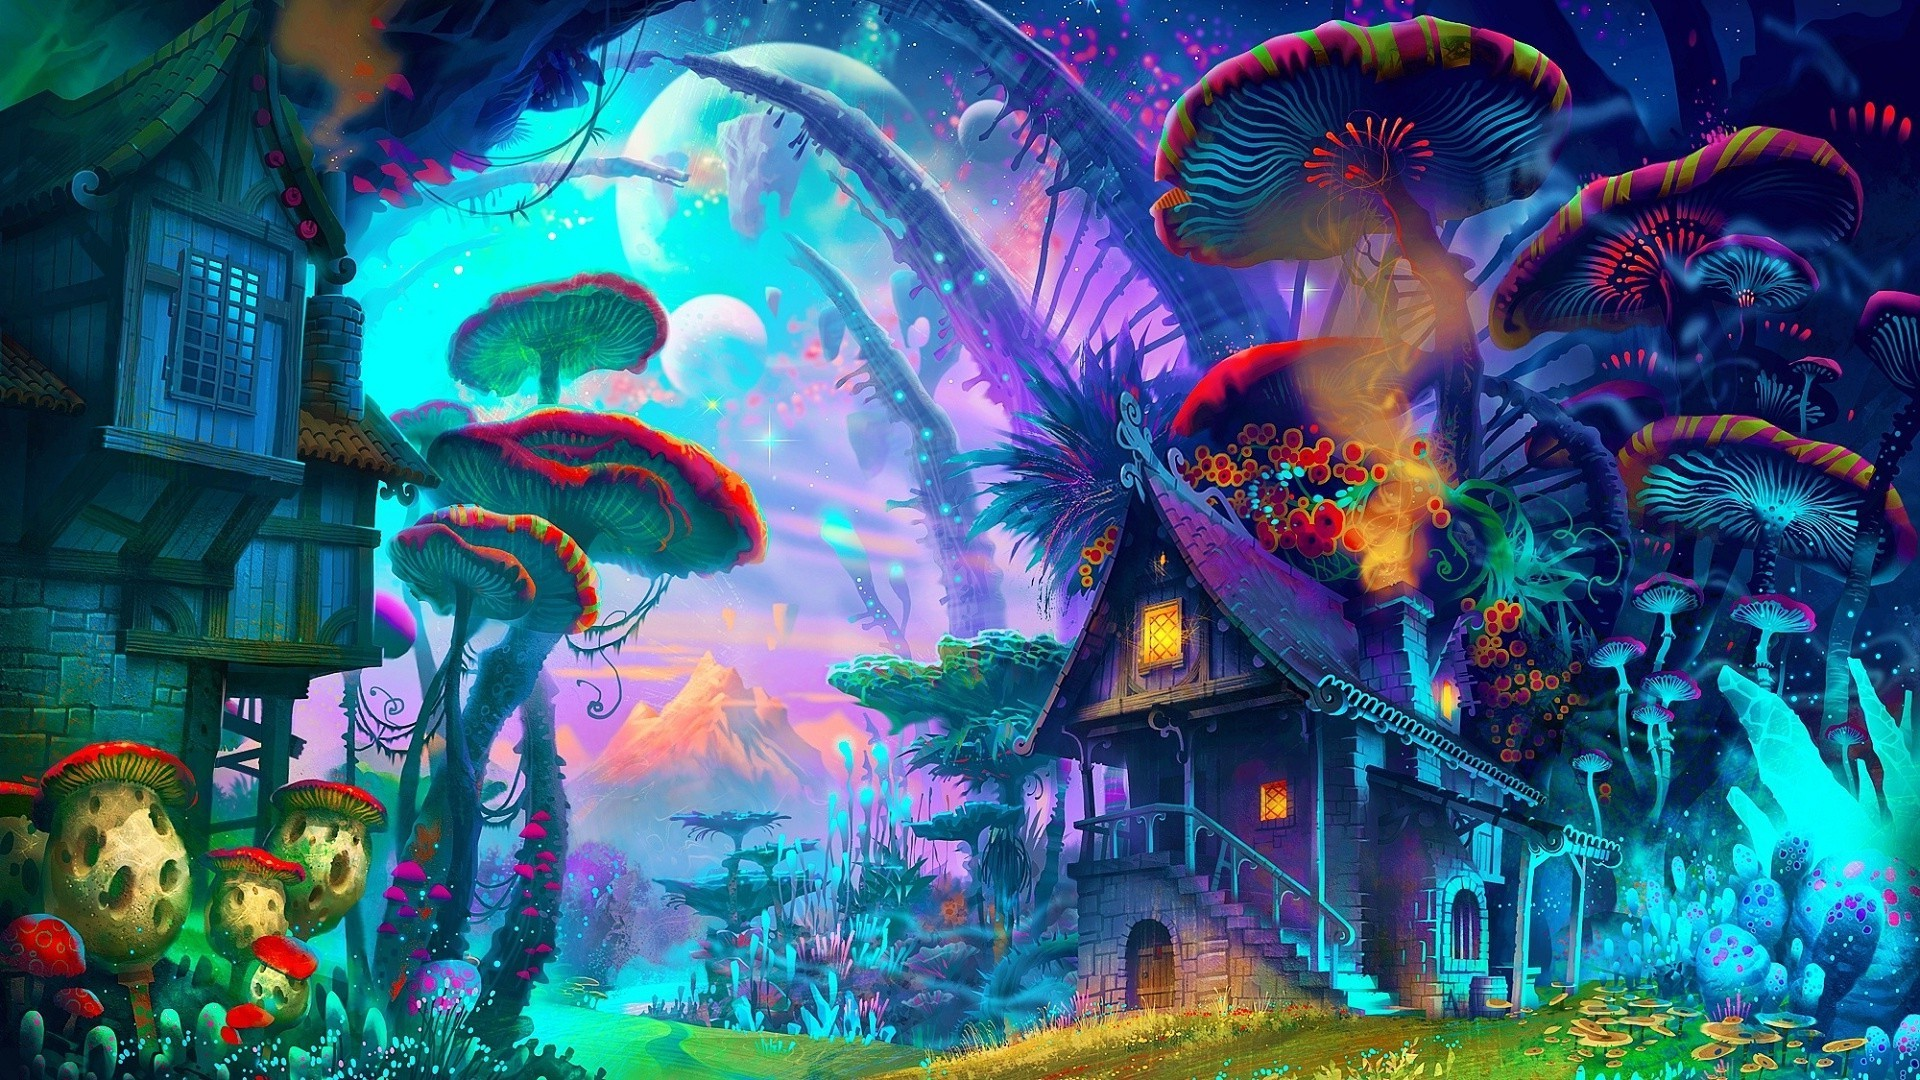 1920x1080 fantasy Art, Drawing, Nature, Psychedelic, Colorful, House, Mushroom,  Planet, Plants, Mountain Wallpapers HD / Desktop and Mobile Backgrounds